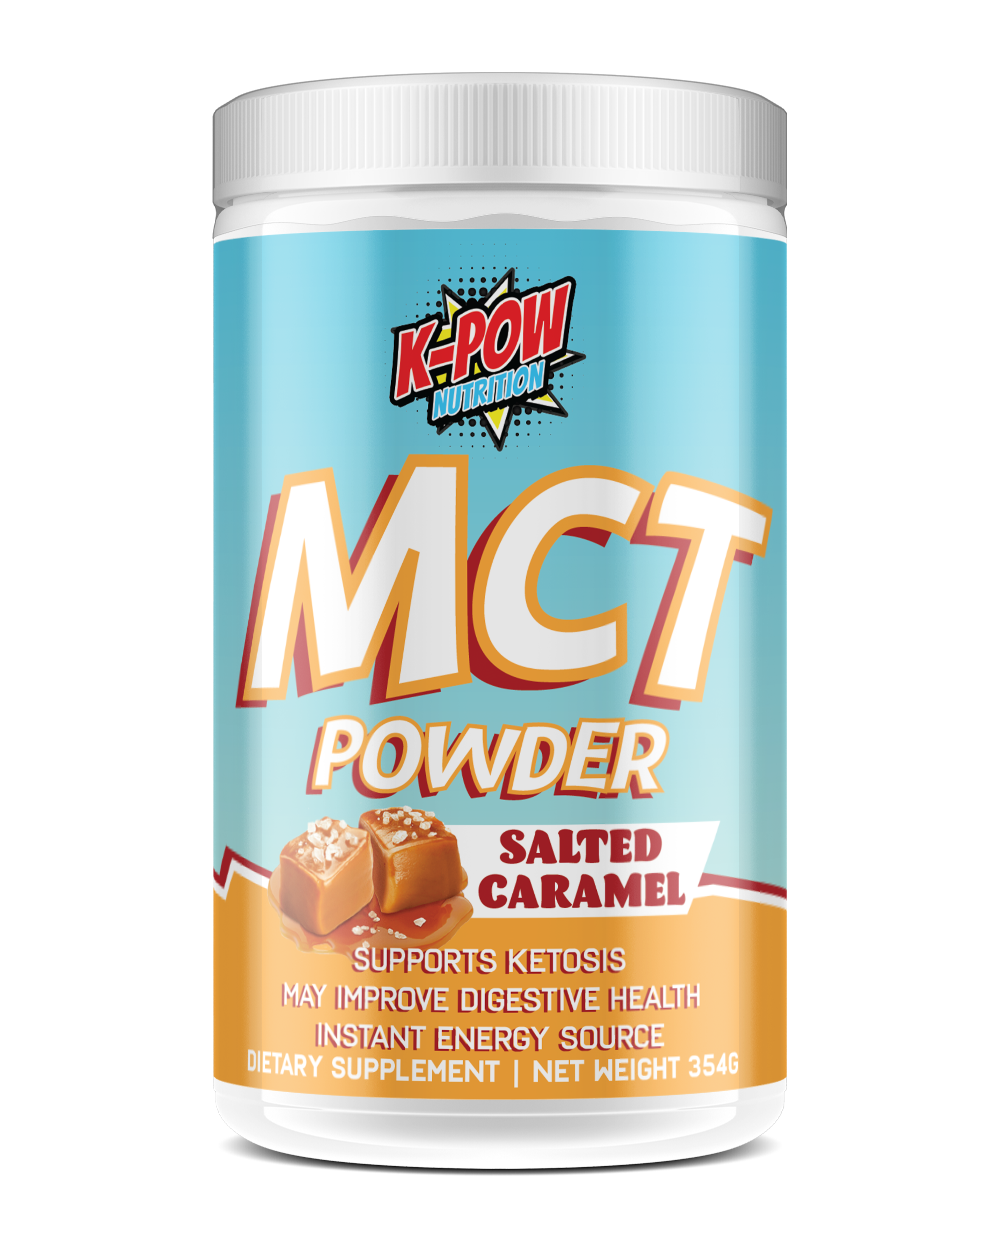 KPOW MCT Powder